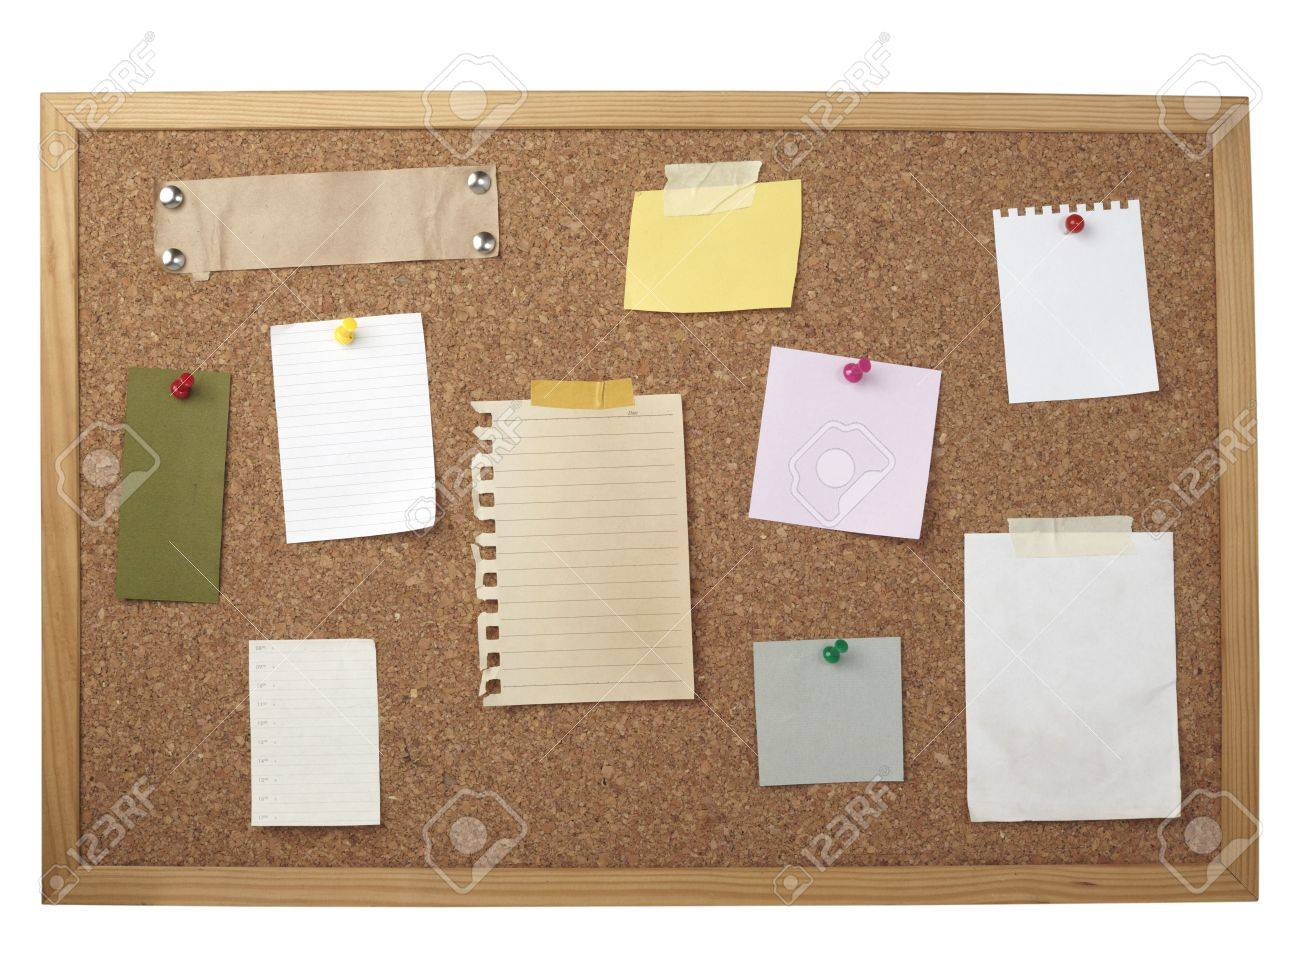 yellowed sheet of wood images stock pictures royalty free collection of various note papers on cork board stock photo pinboard yellowed sheet of